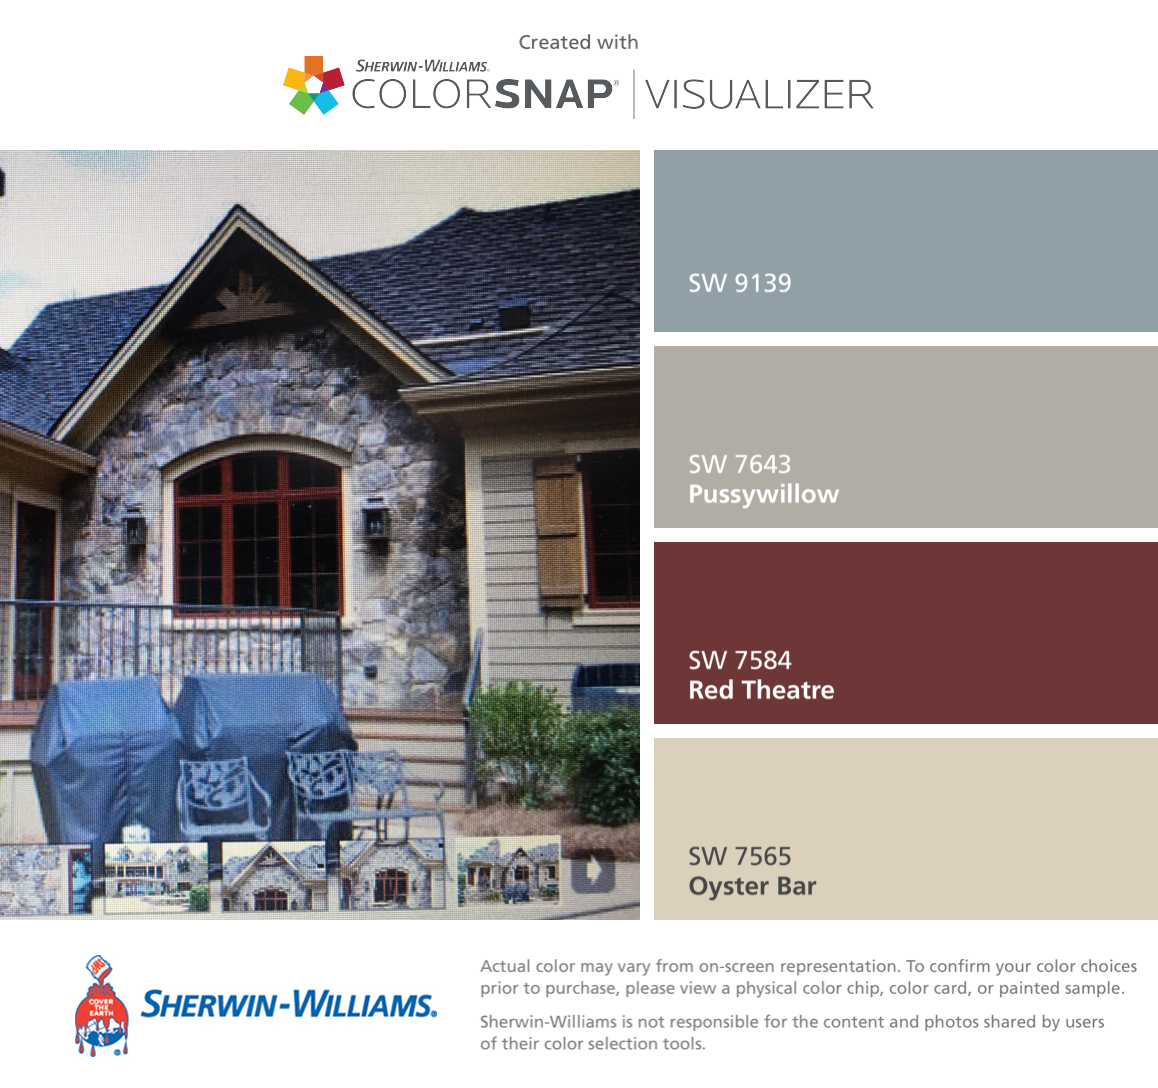 I Found These Colors With Colorsnap Visualizer For Iphone By Sherwin Williams Debonair Sw